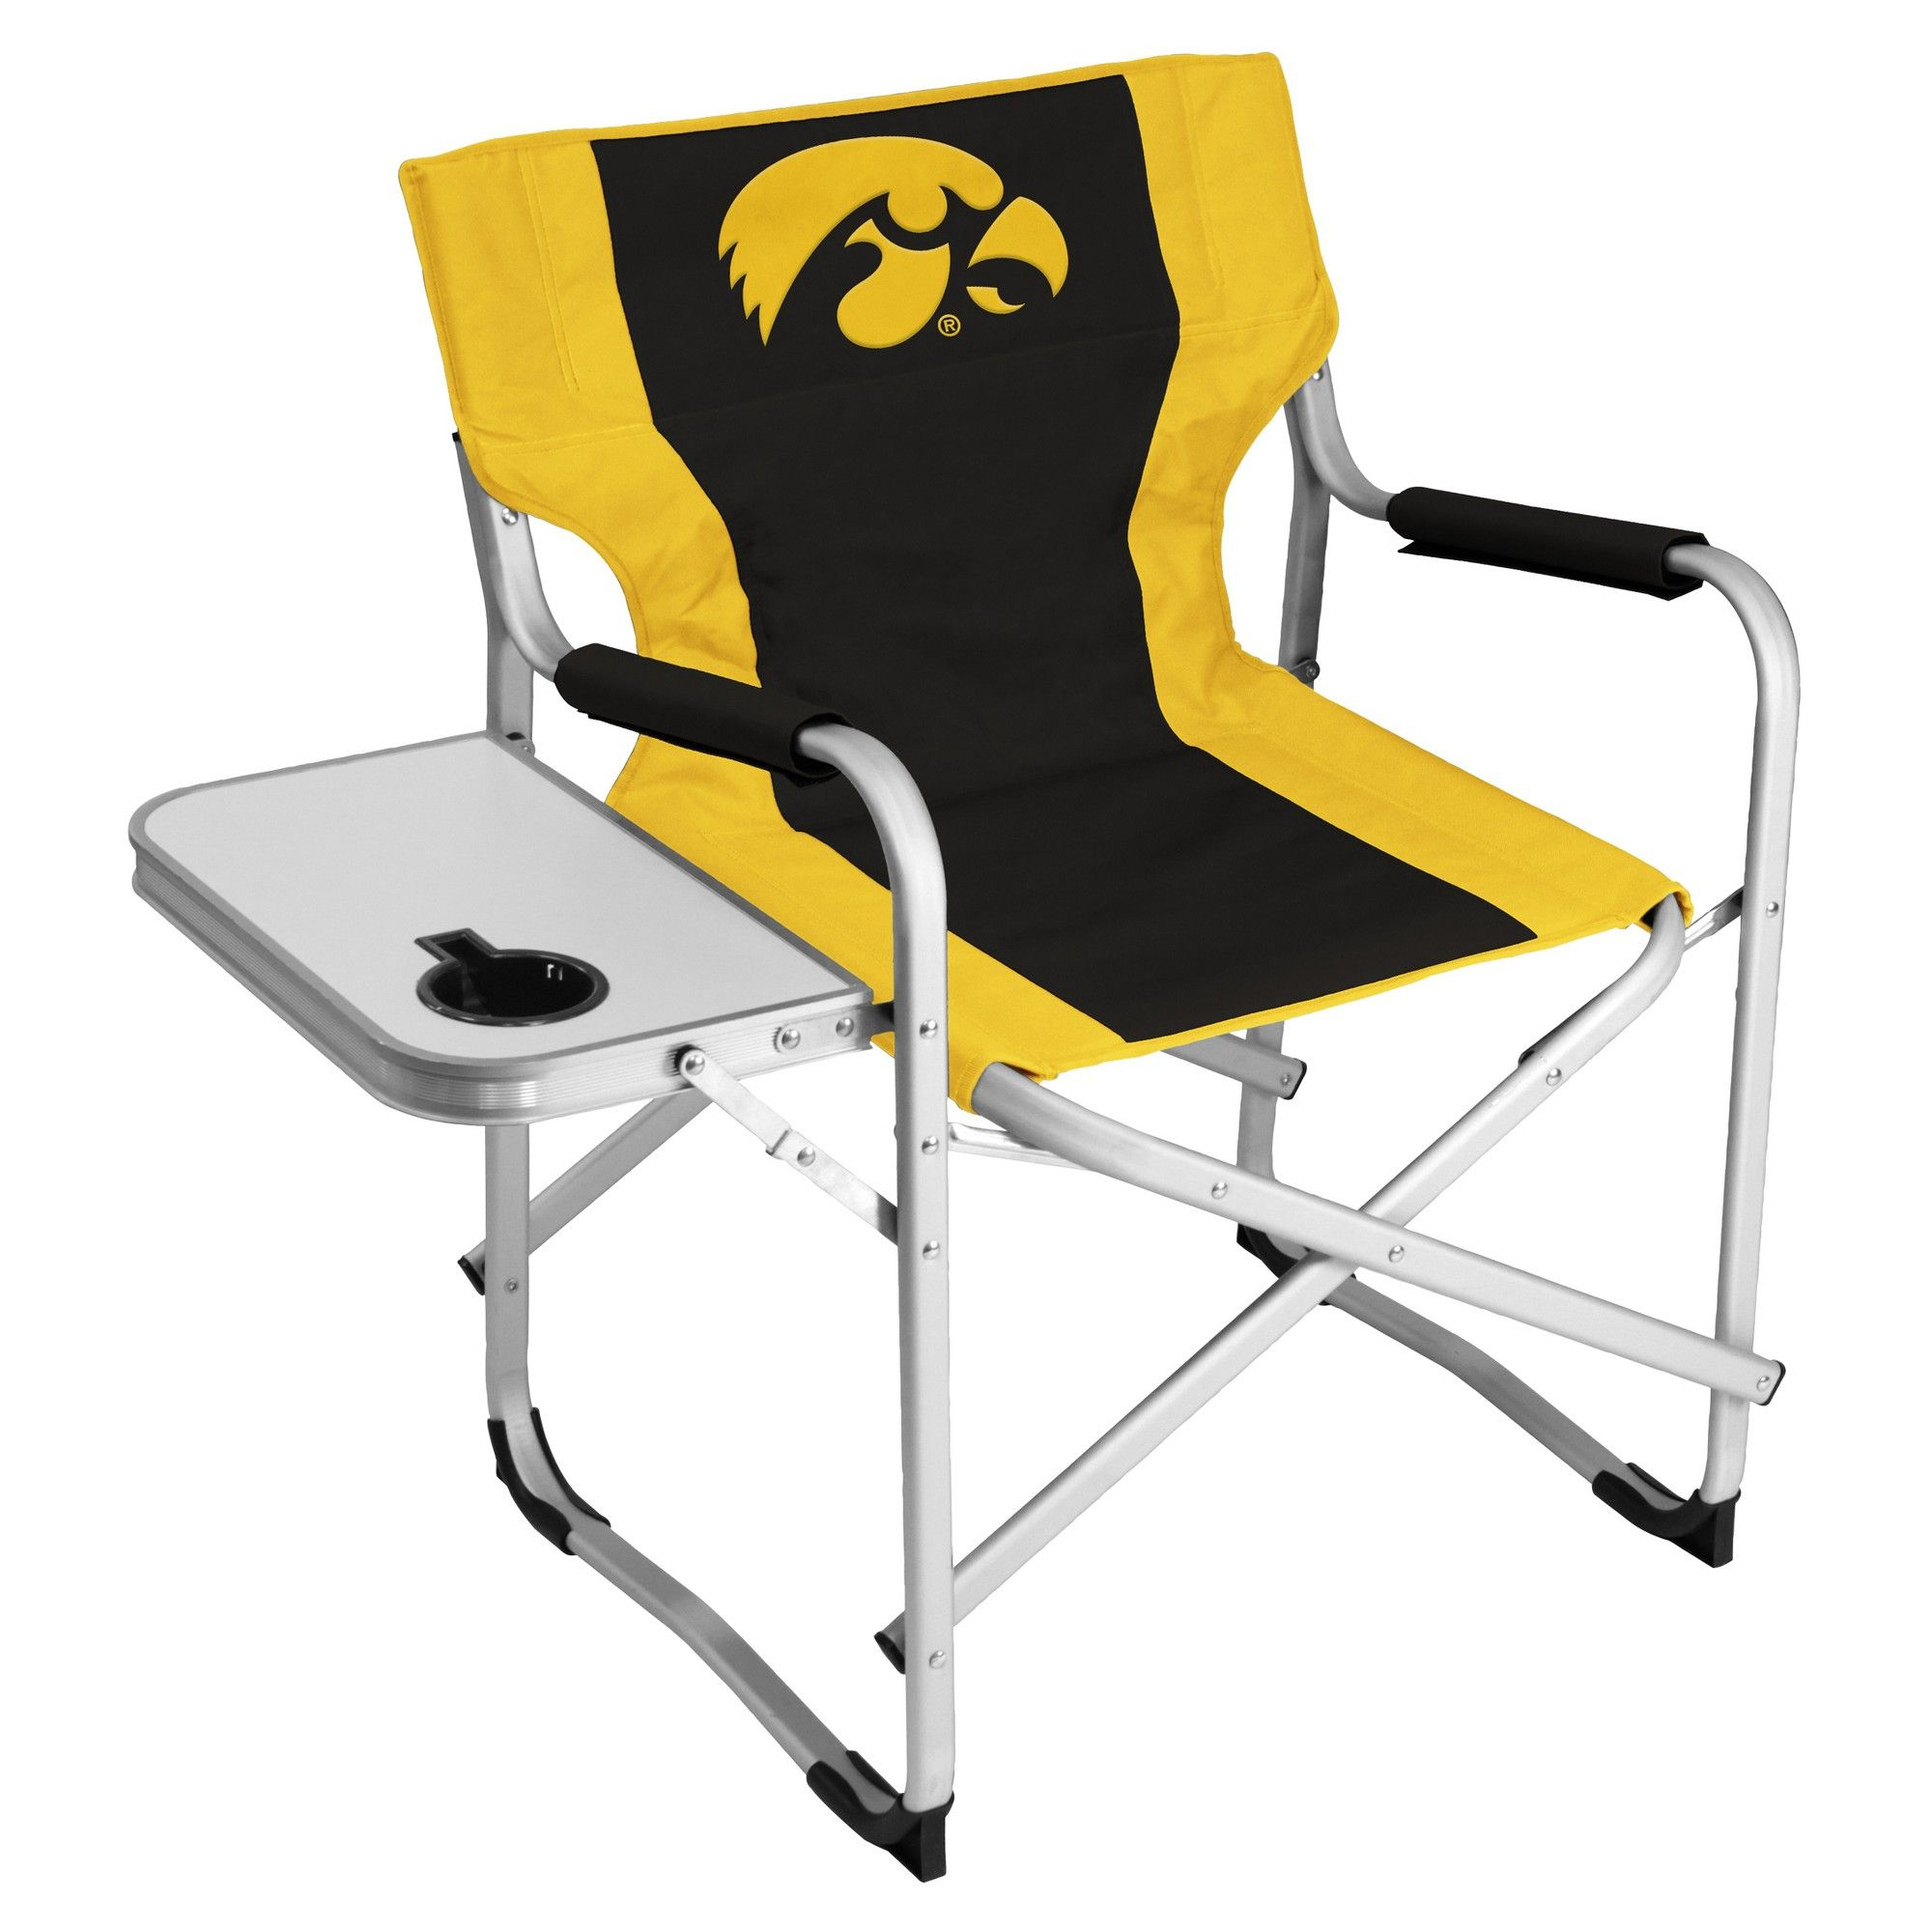 Prime Ncaa Iowa Hawkeyes Logo Brands Alumni Deck Chair Products Beatyapartments Chair Design Images Beatyapartmentscom